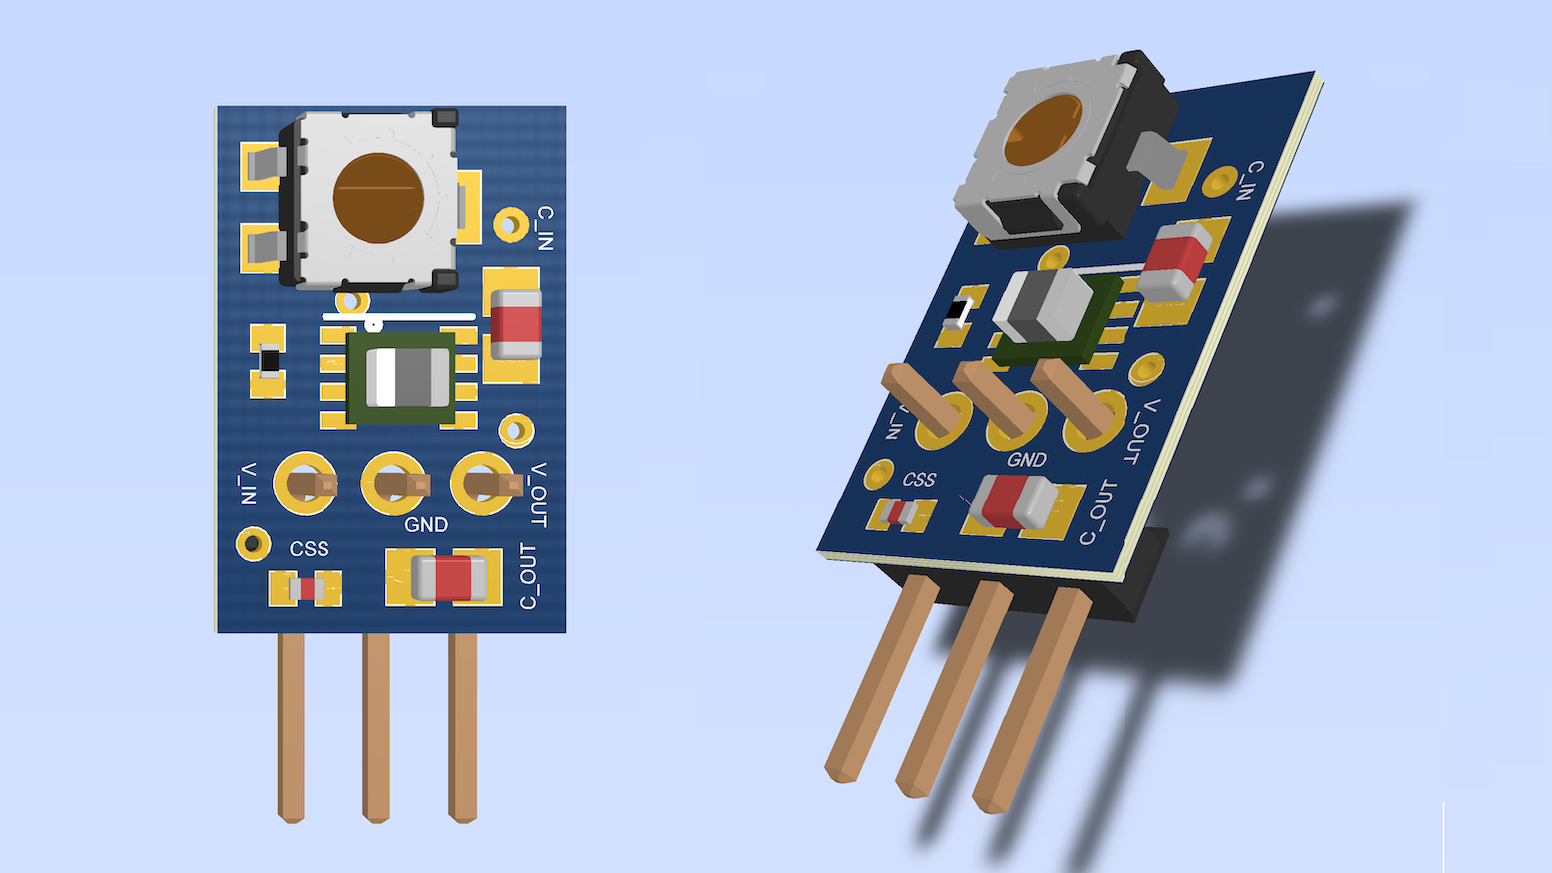 PS-1A is an adjustable switch mode DC-DC power supply. It is highly compact, breadboard friendly and requires no external components.